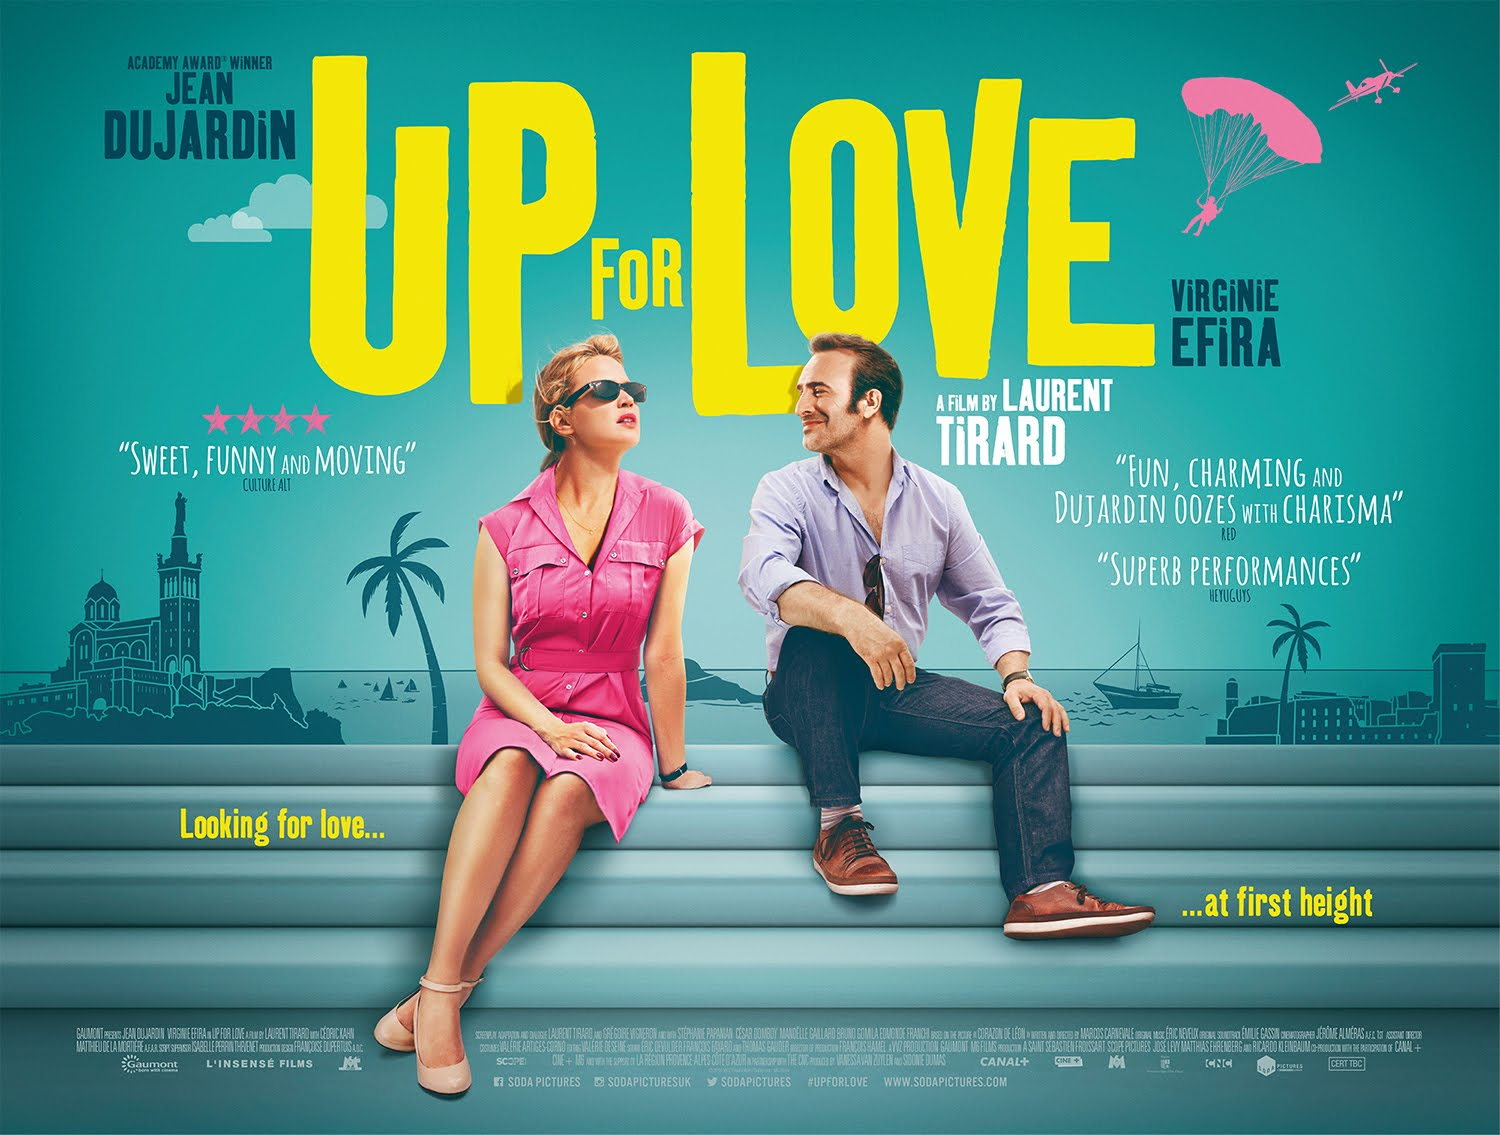 UP FOR LOVE TRAILER